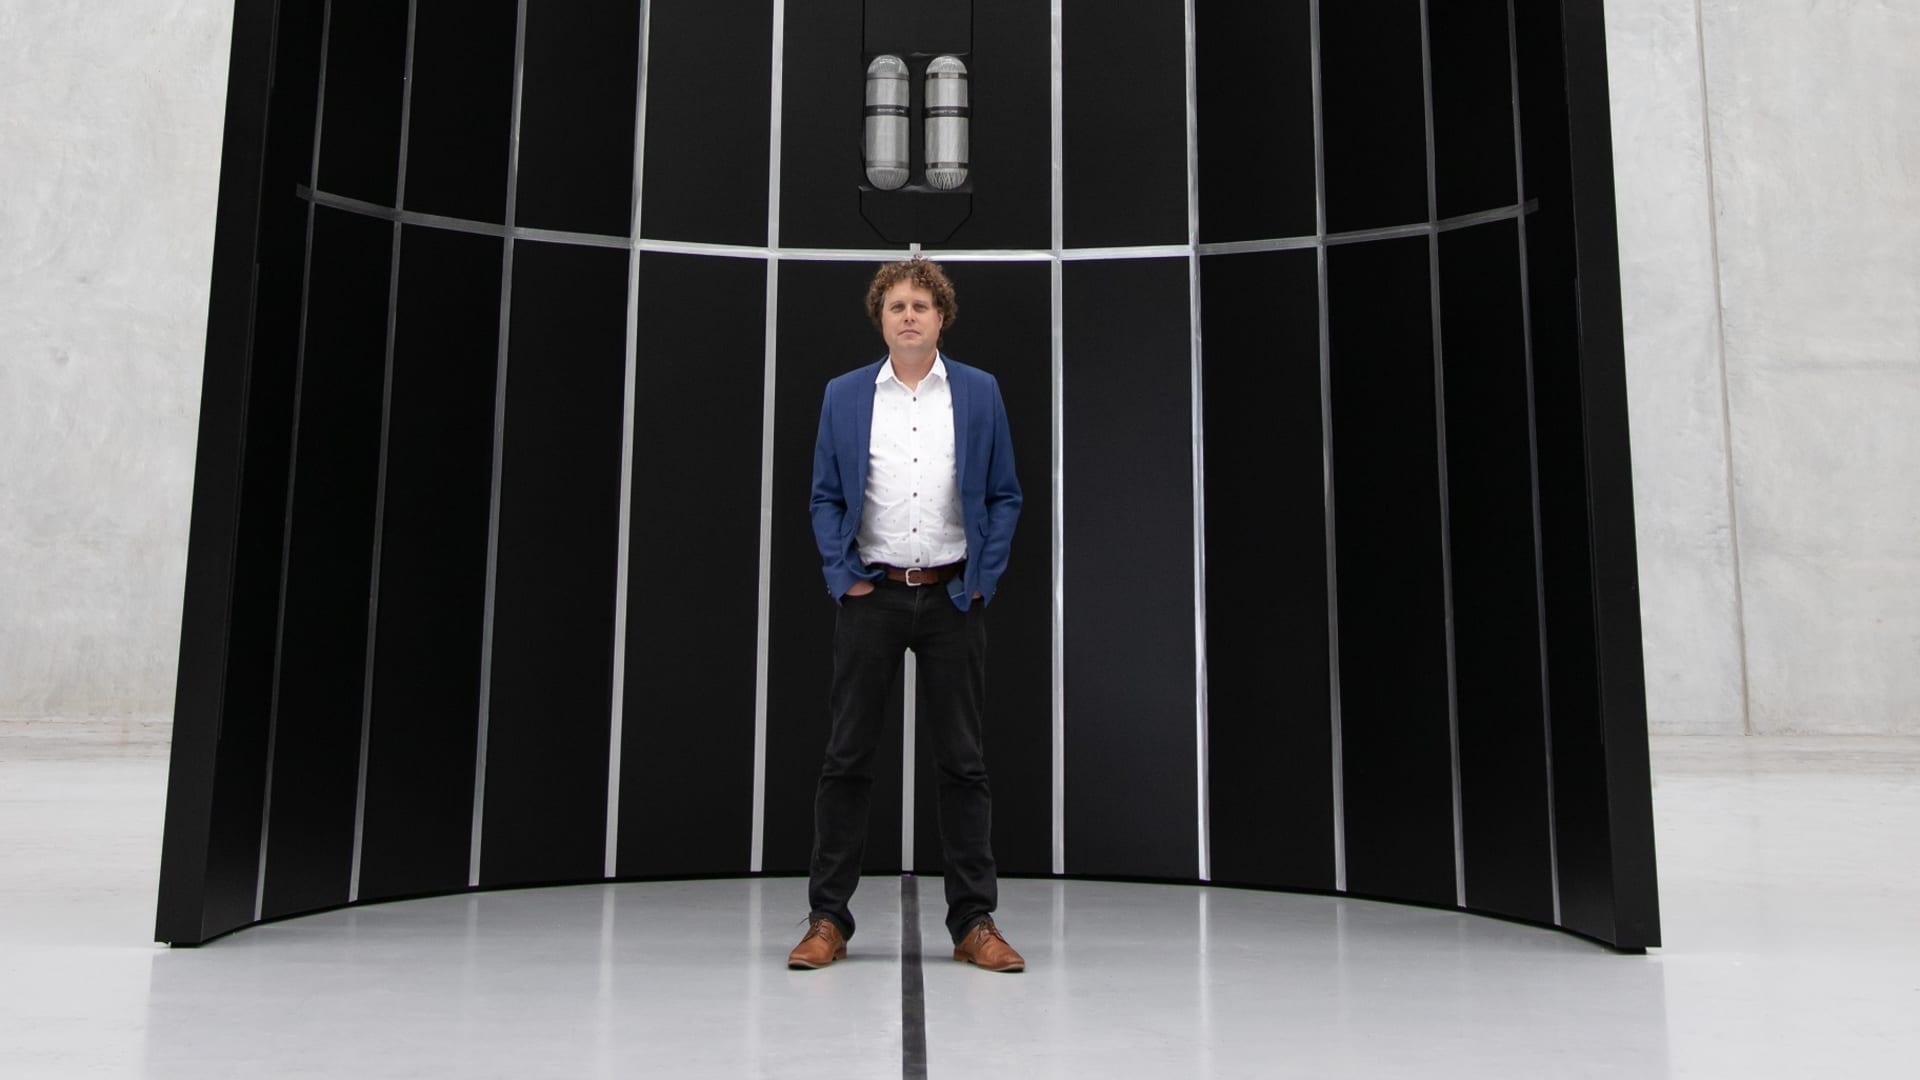 CEO Peter Beck stands at the base of the fairing, or nosecone, of the Neutron rocket the company is developing.